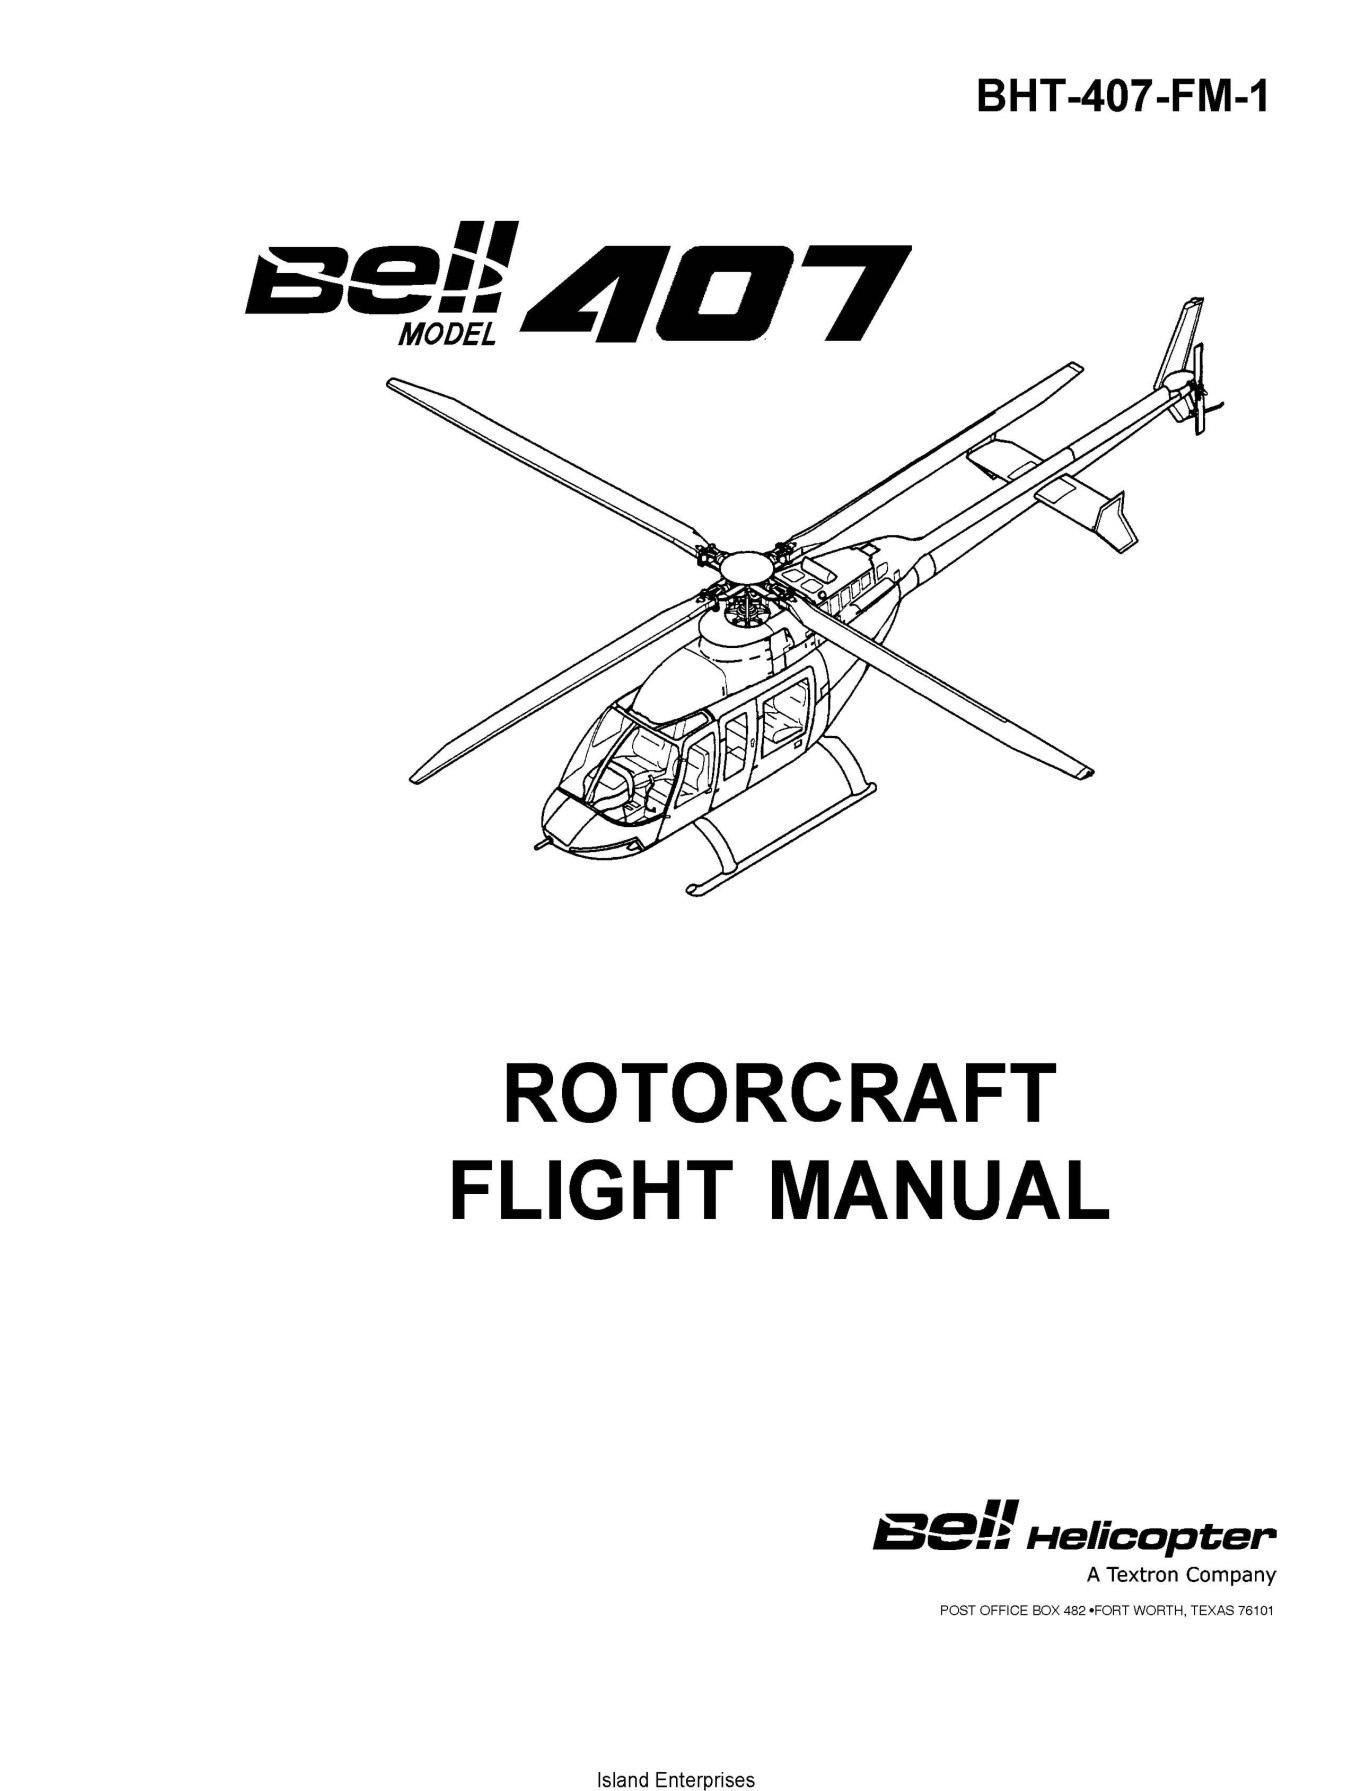 Bell Model 407 Rotorcraft Flight Manual BHT-407-FM-1